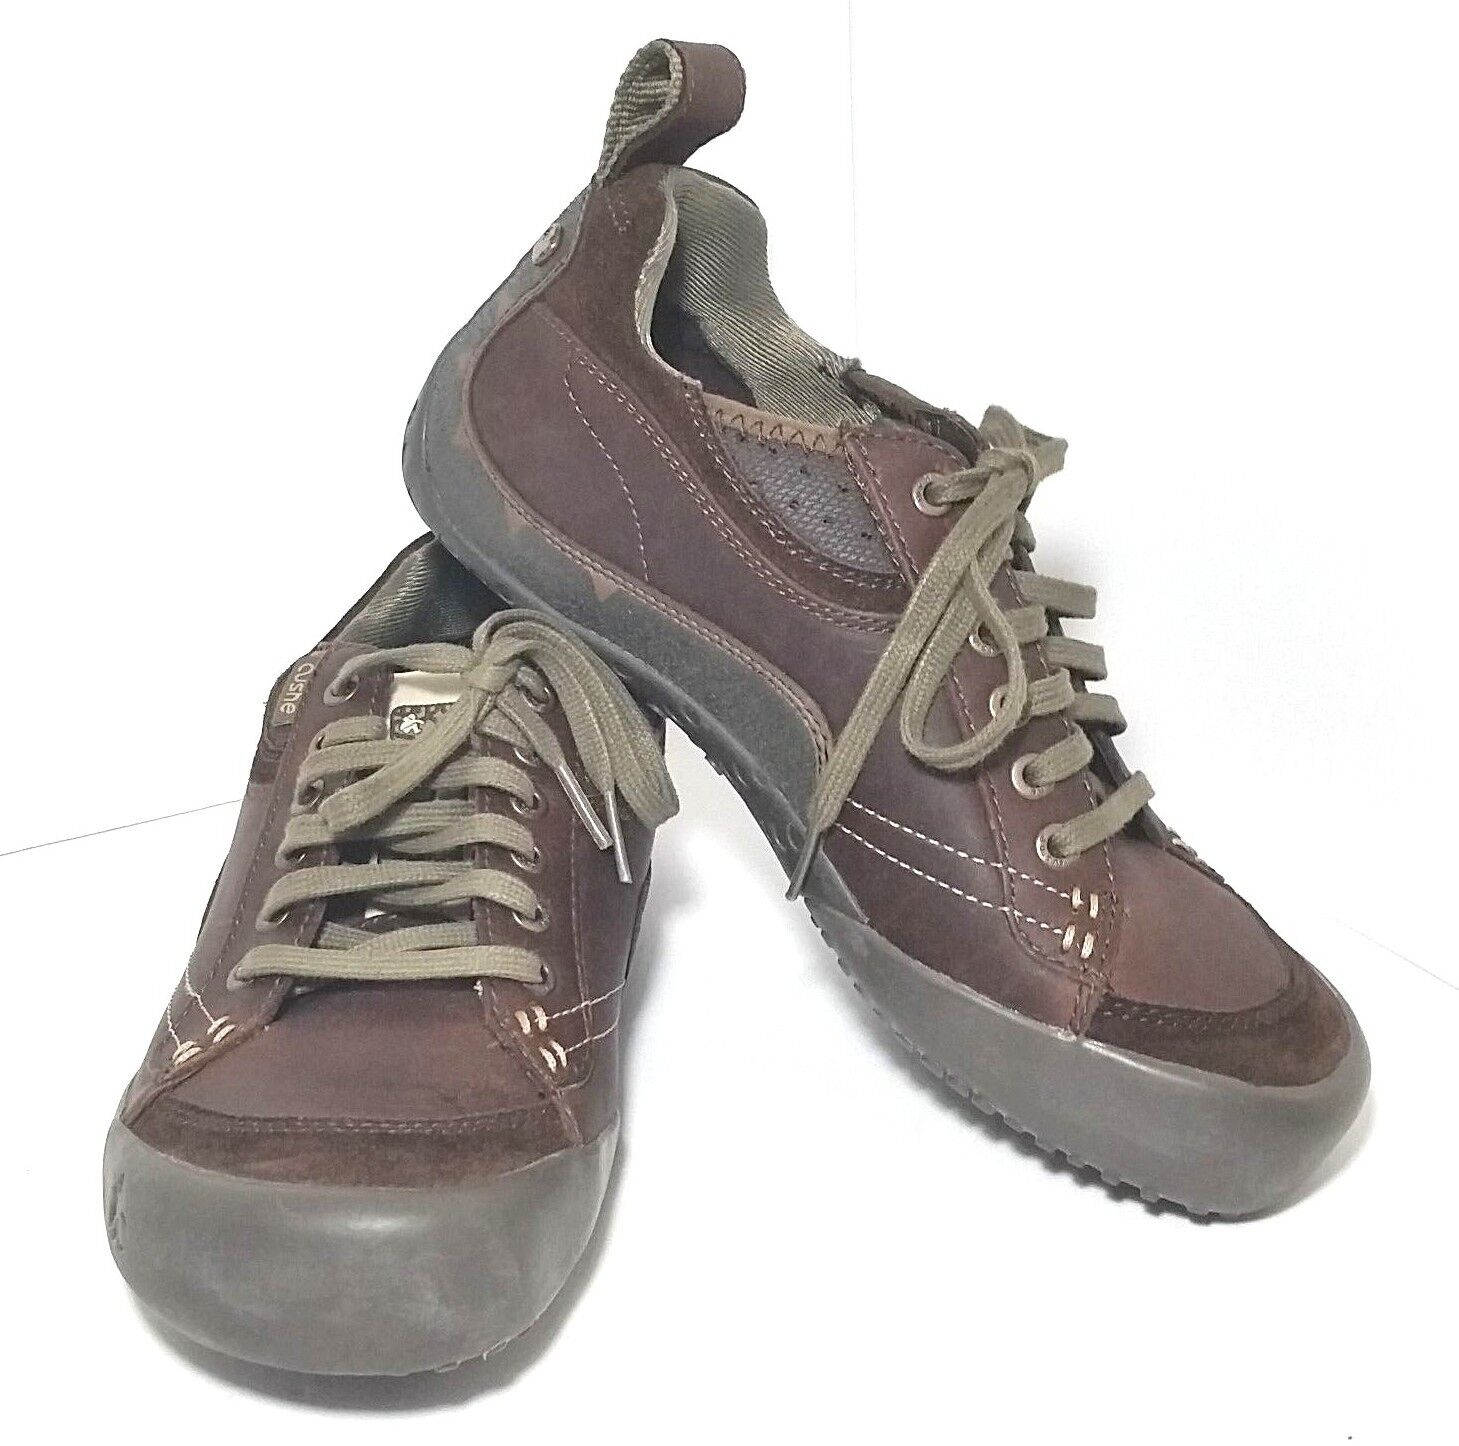 Cushe Frequent Flyer Leather shoes Brown Size 8 Lace Up Style UM00485